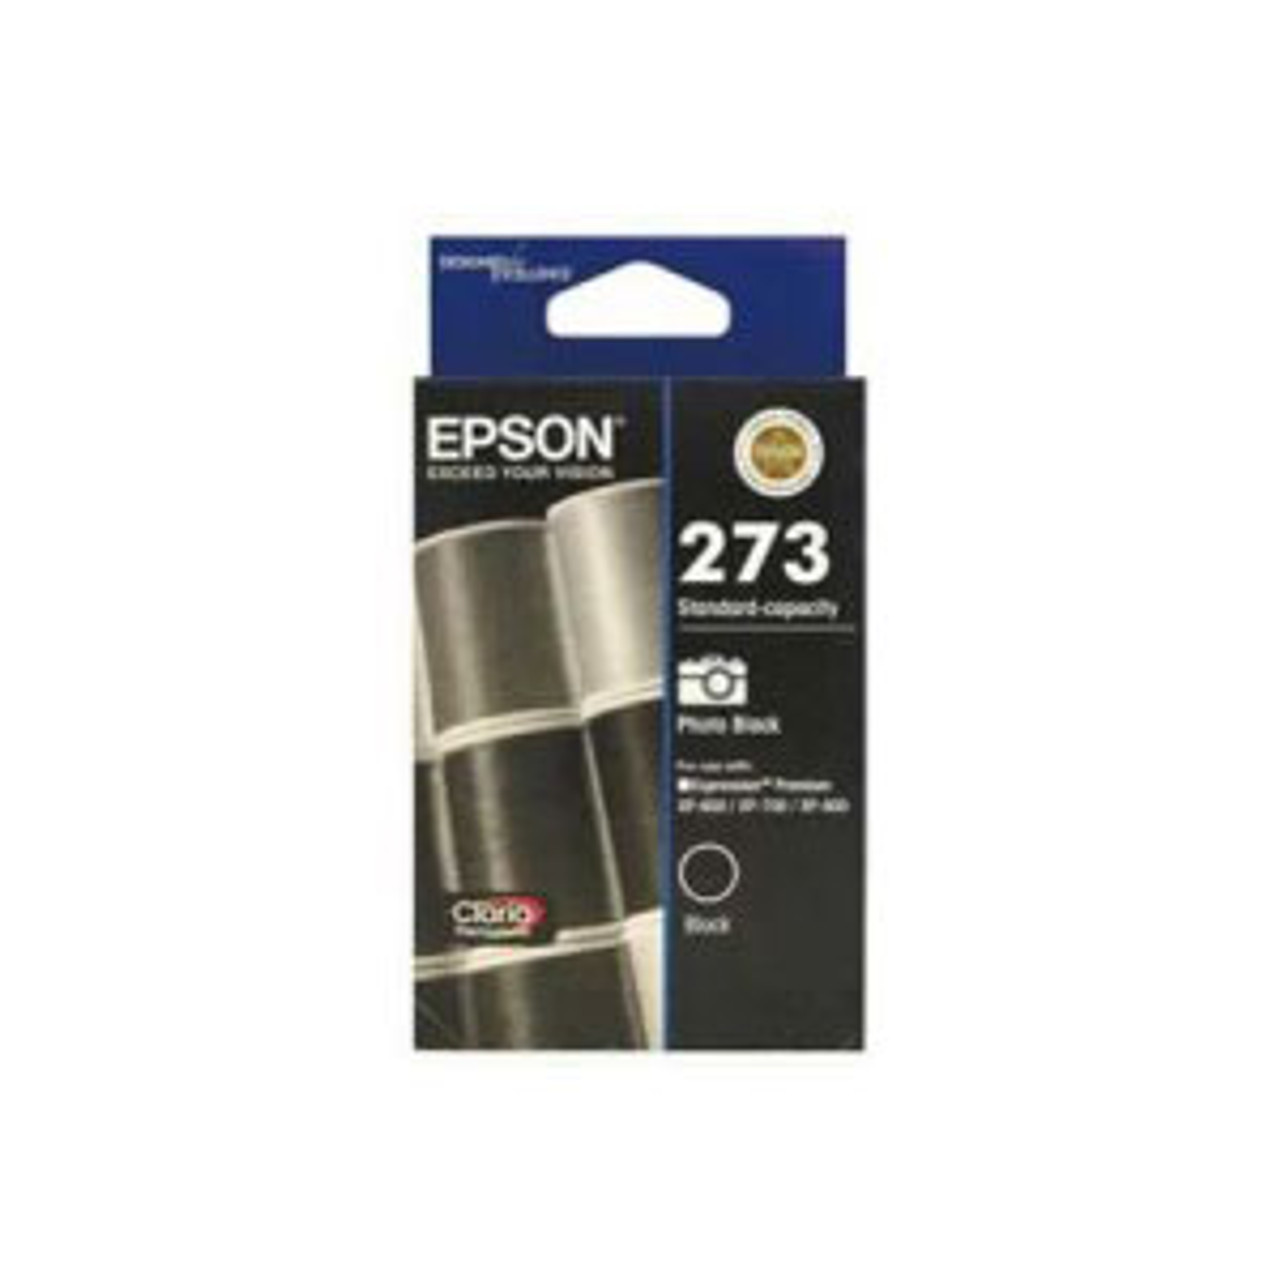 Image for Epson 273 Photo Black Ink Cartridge 250 pages CX Computer Superstore